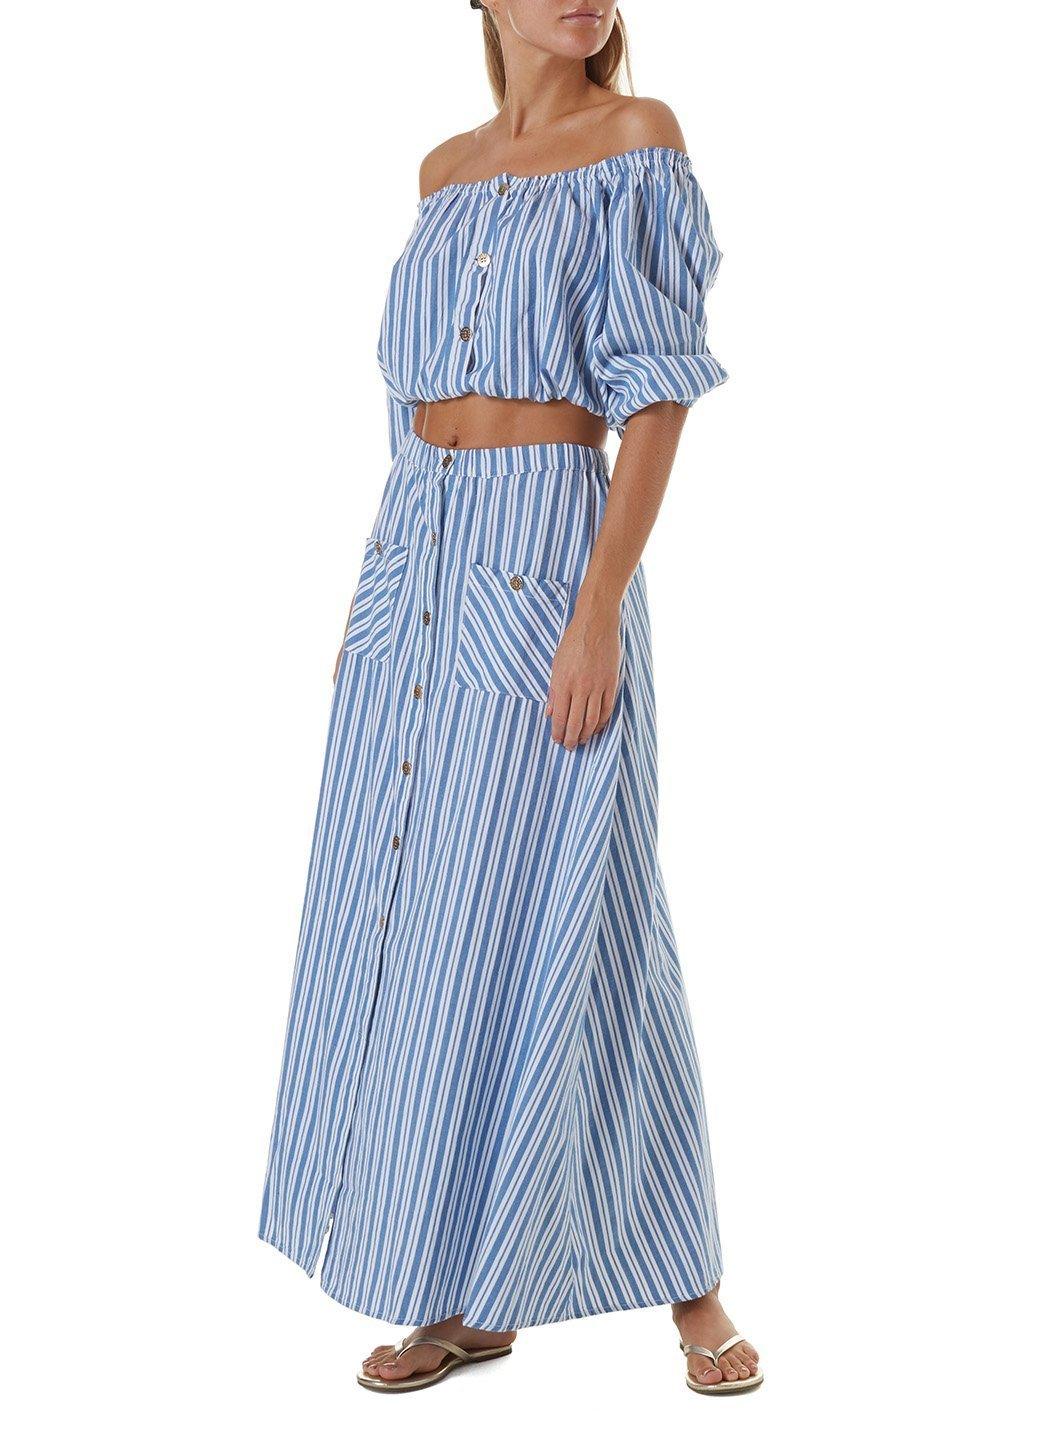 danna blue stripe top